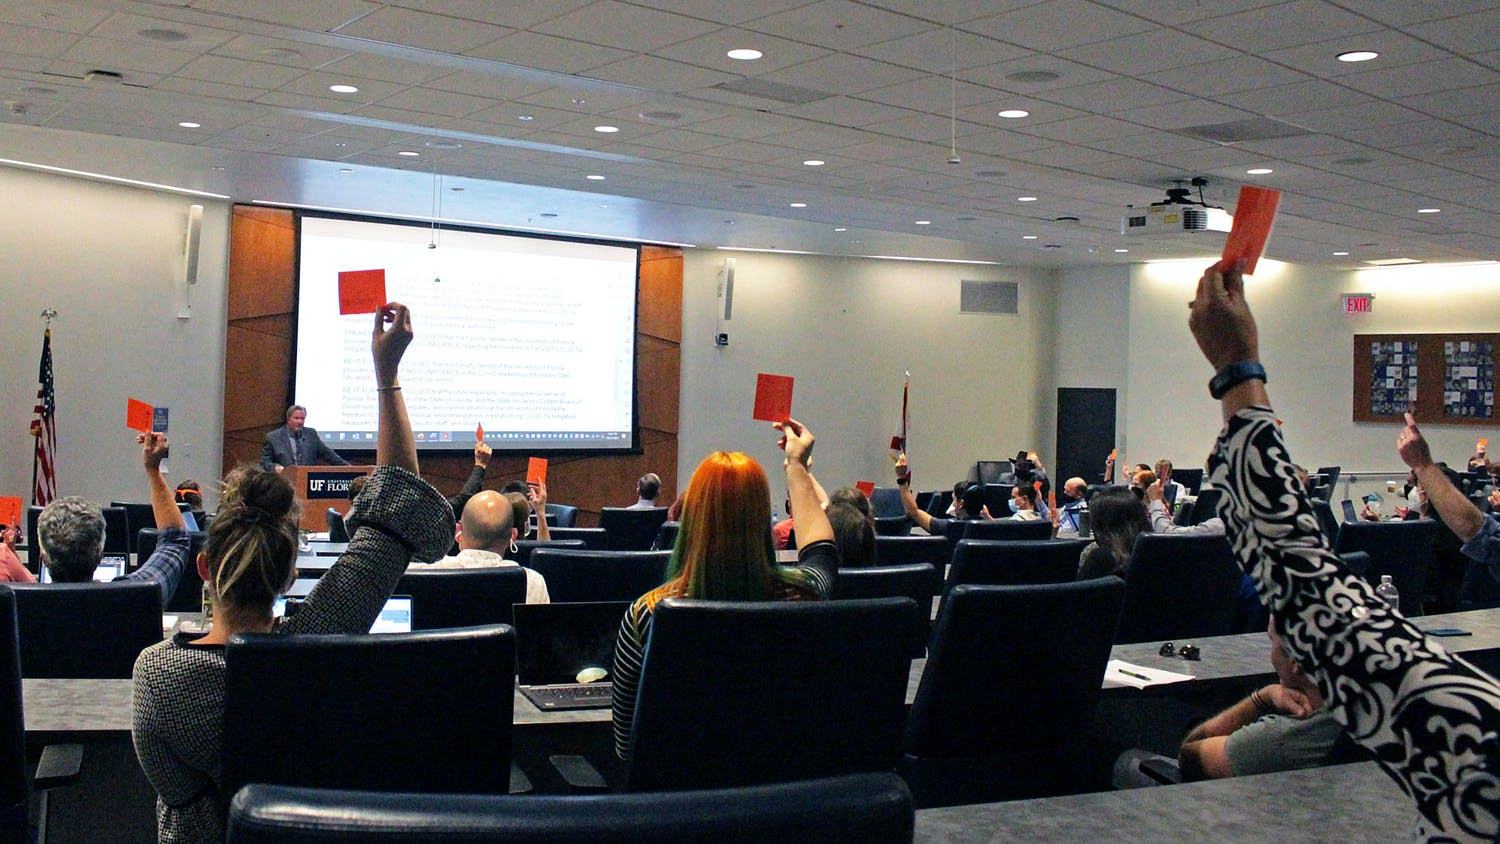 UF Faculty Senate members vote to delay the COVID-19 no-confidence resolution in the Reitz Union Chamber on Thursday, Oct. 21, 2021.